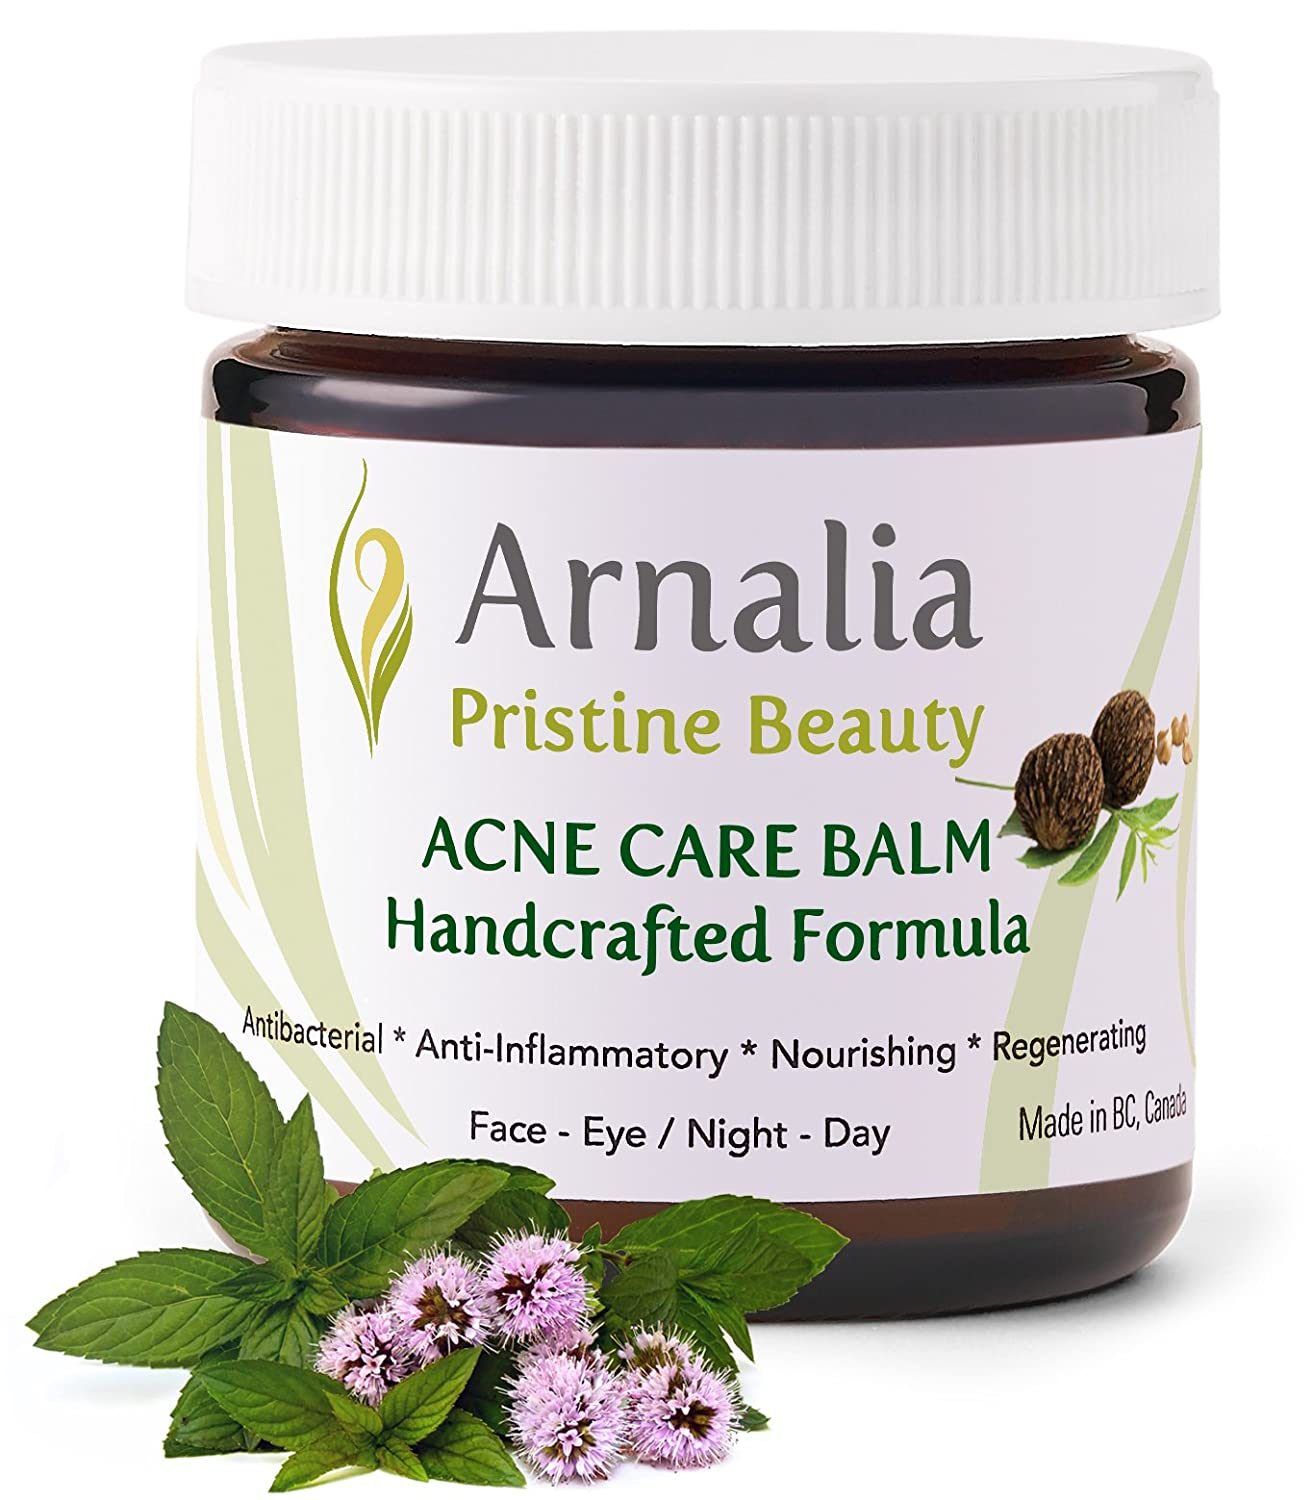 ARNALIA Acne Care Cream - 100% Pure Natural & Organic Wild Grown Herbs, Face & Back Acne Spot Treatment, Cystic & Hormonal Acne, Teen Acne, Cold Sores, Tea Tree Oil Rapid Clear Balancing Cosmetic Balm (0.3oz)